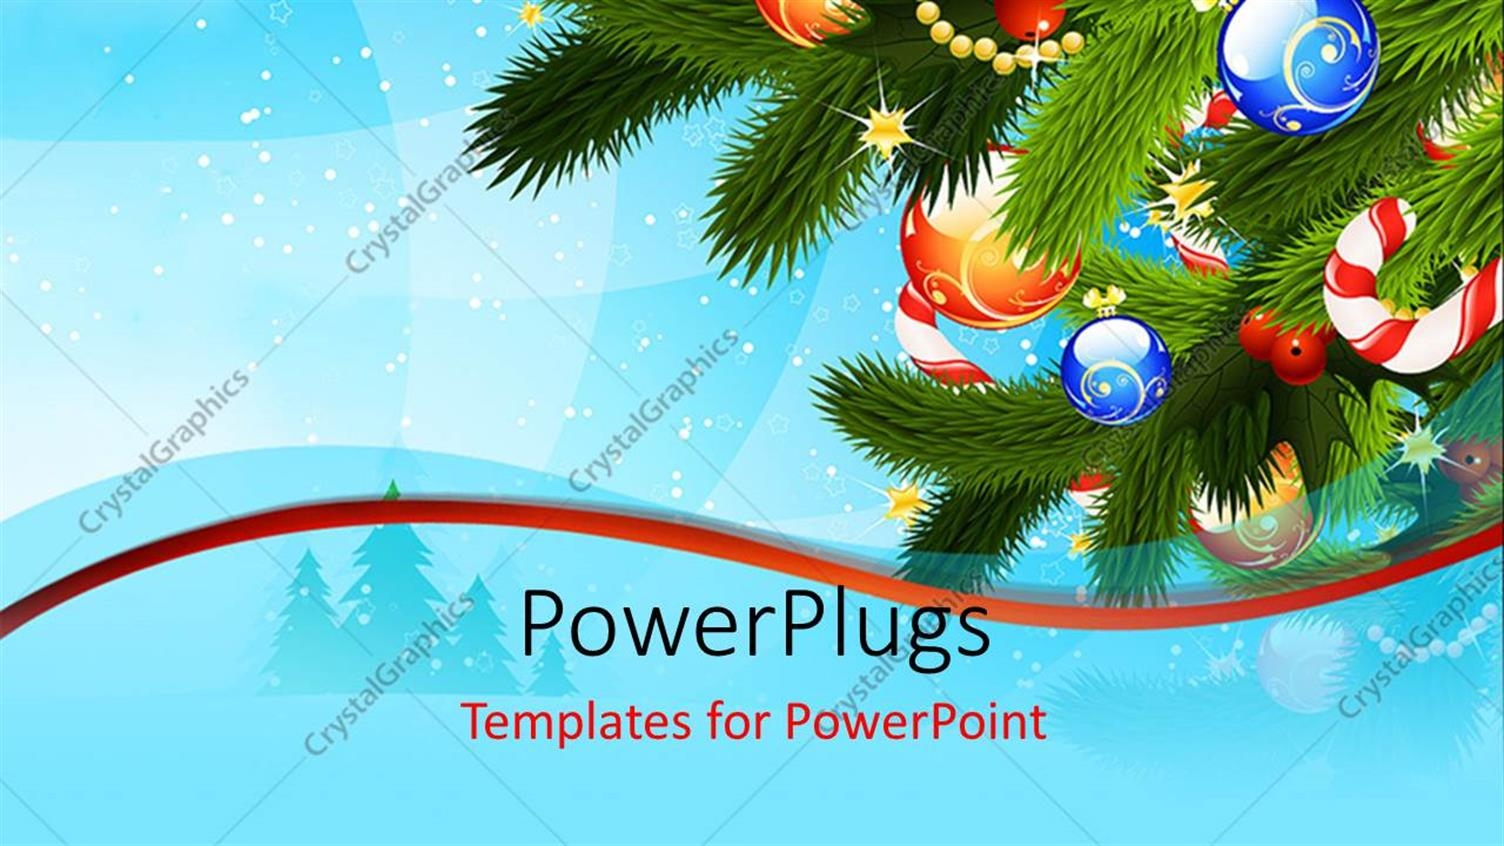 PowerPoint Template Displaying Christmas Depiction with Colorful Ornaments on Christmas Tree Over Blue Background